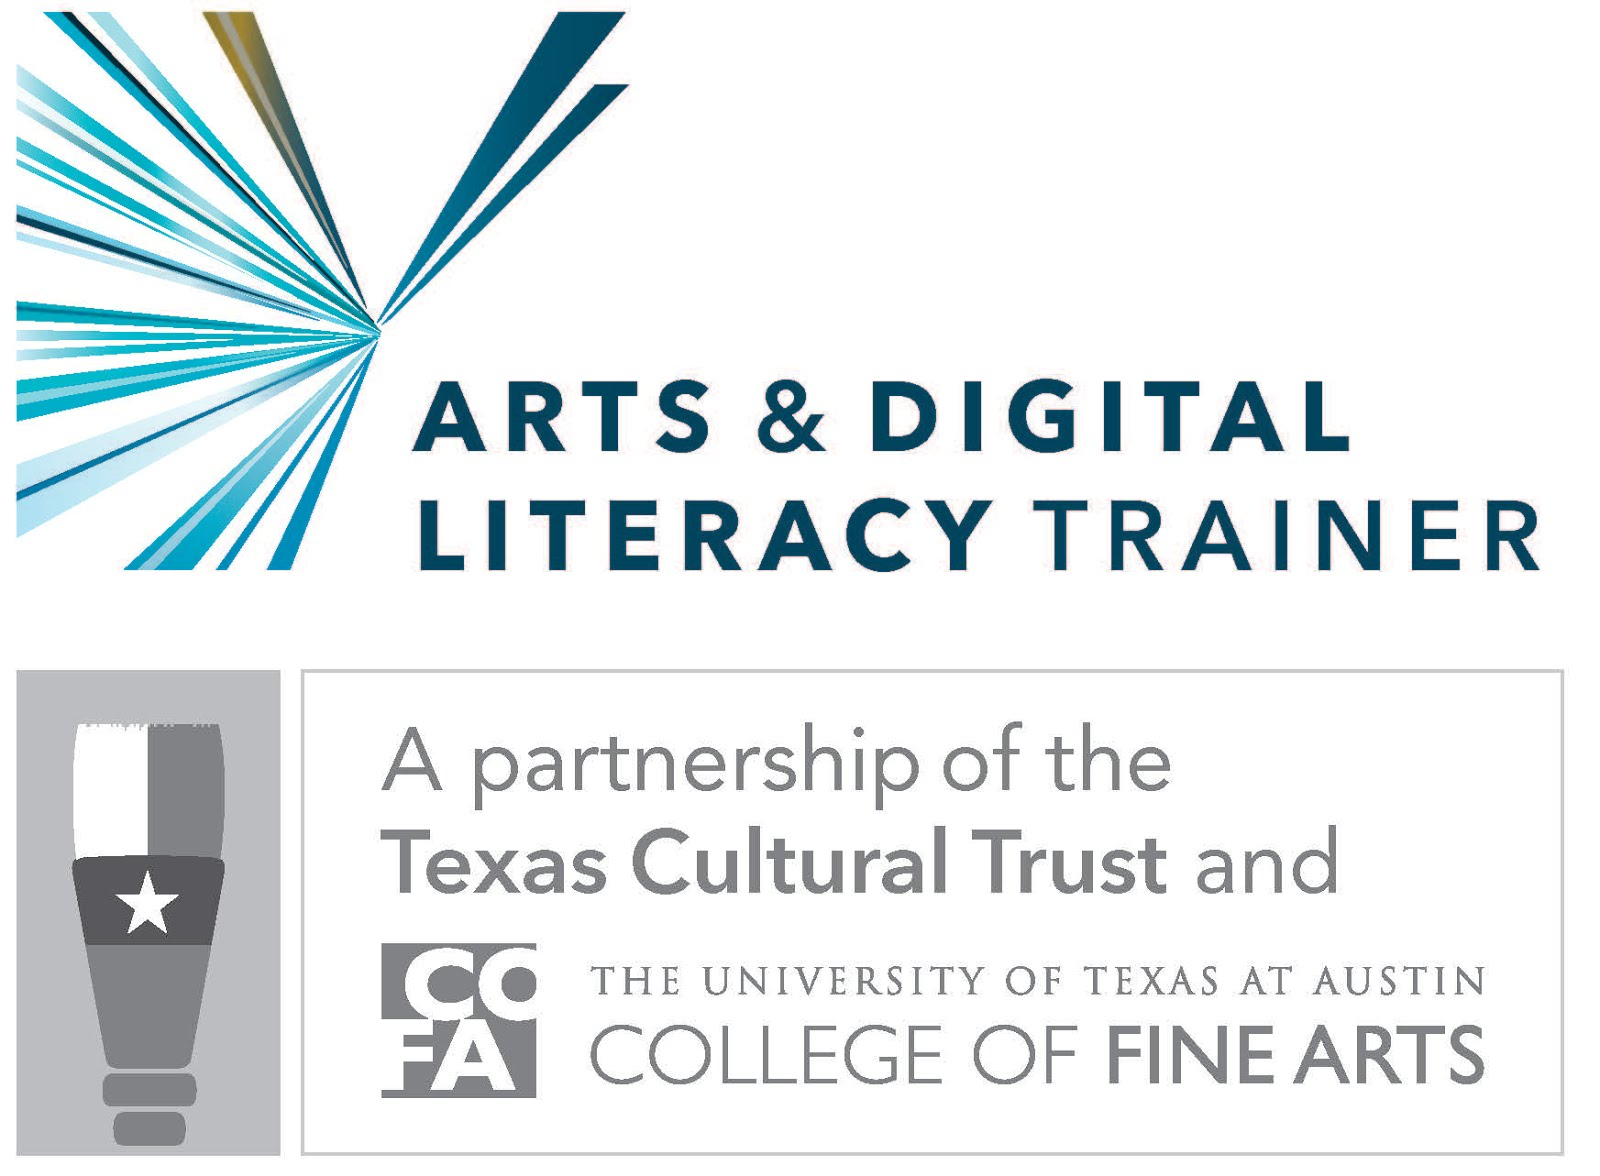 Texas Cultural Trust: Arts & Digital Literacy